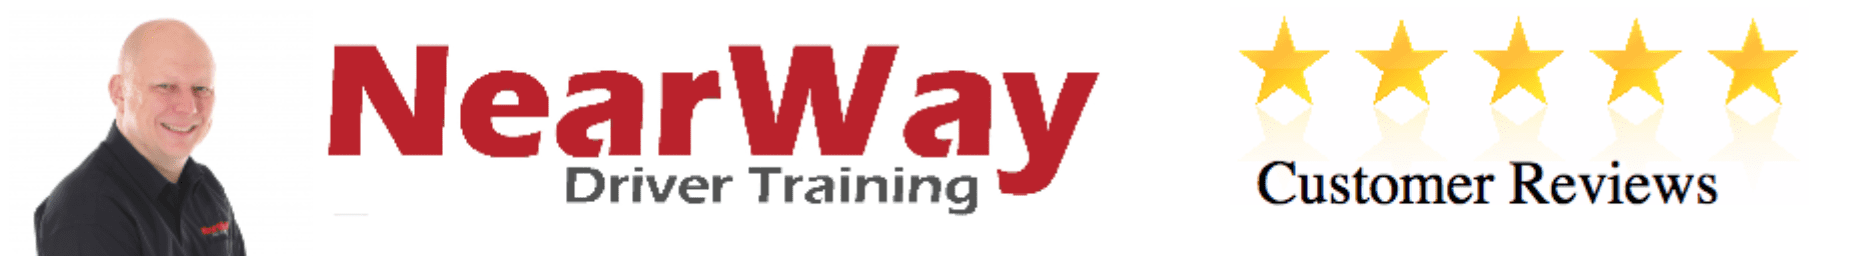 NearWay Driver Training